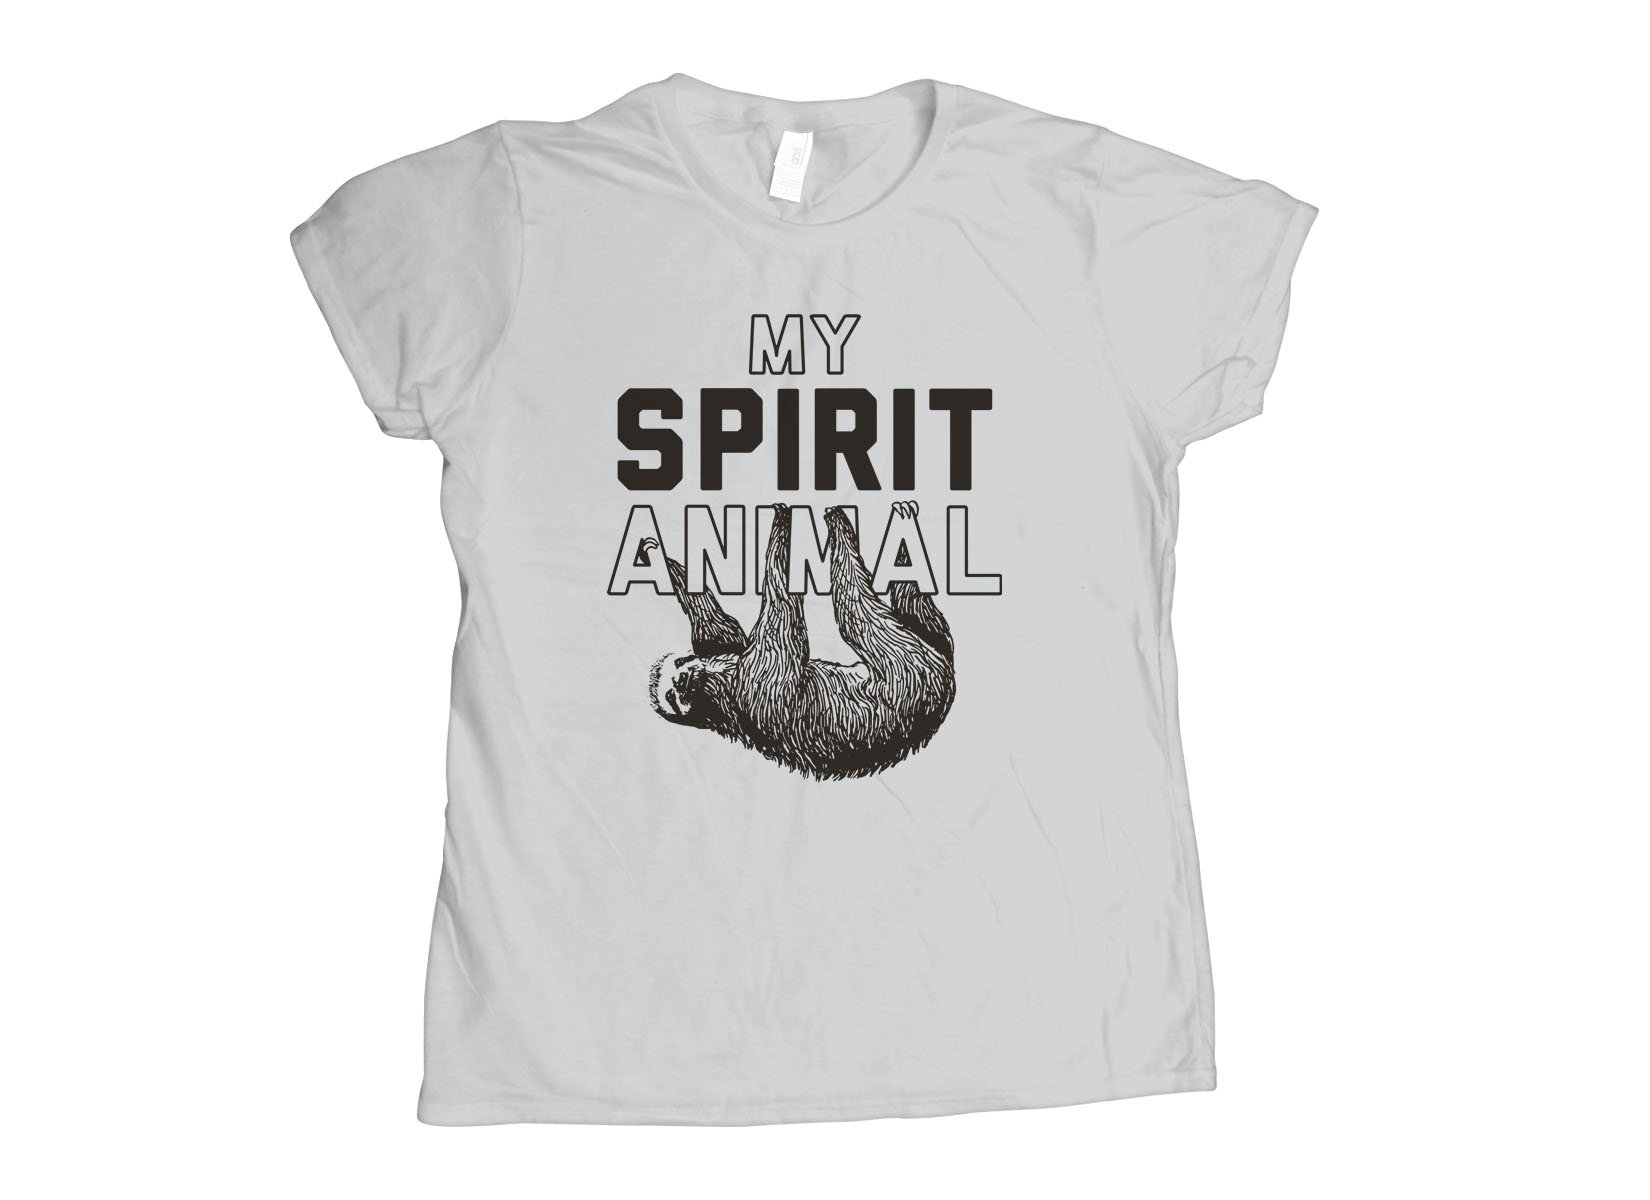 My Spirit Animal on Womens T-Shirt